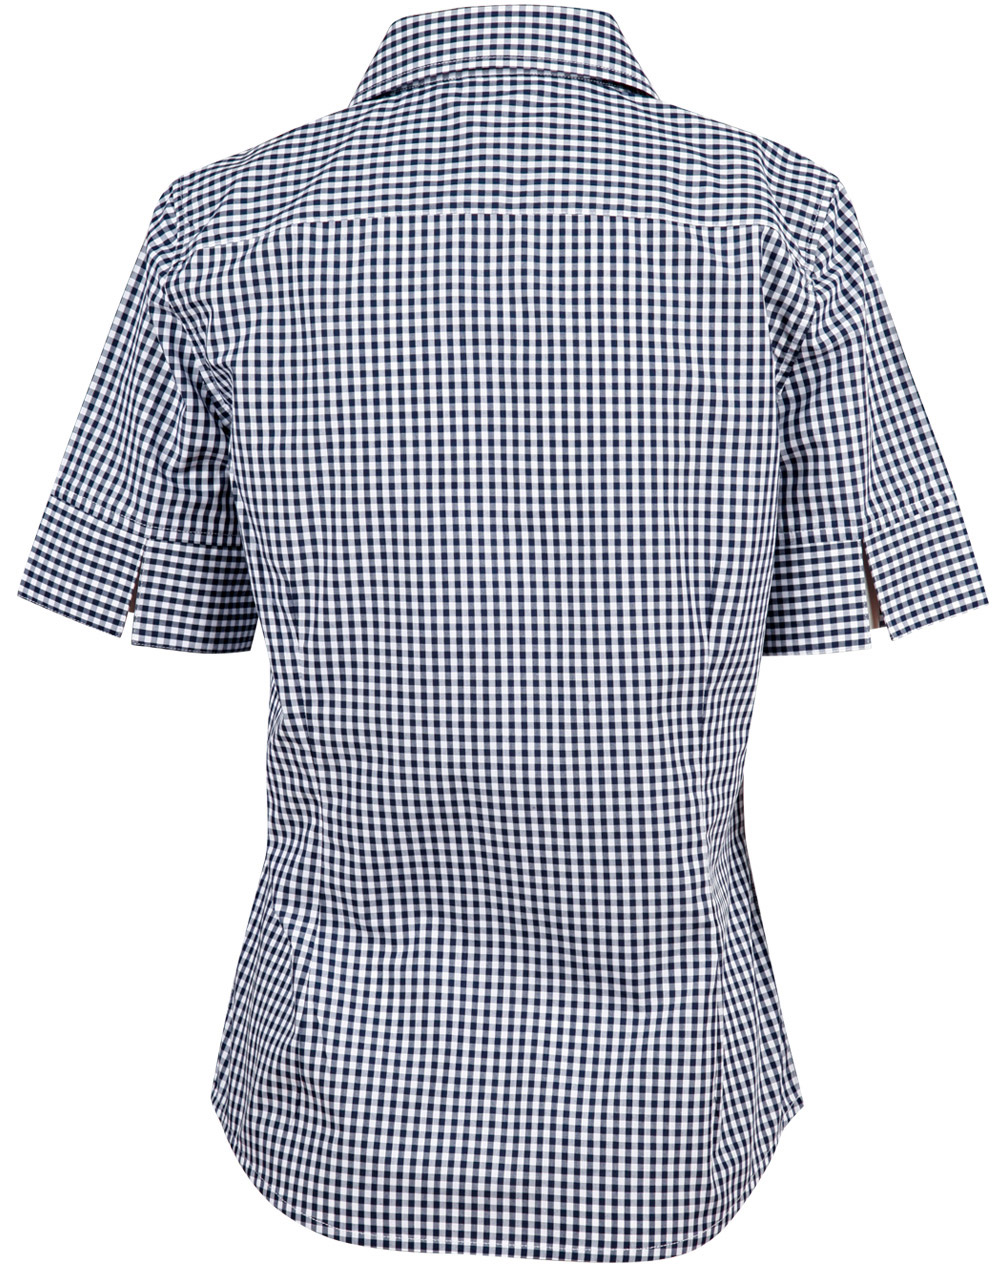 M8300s ladies gingham check short sleeve shirt for Red and white gingham shirt women s